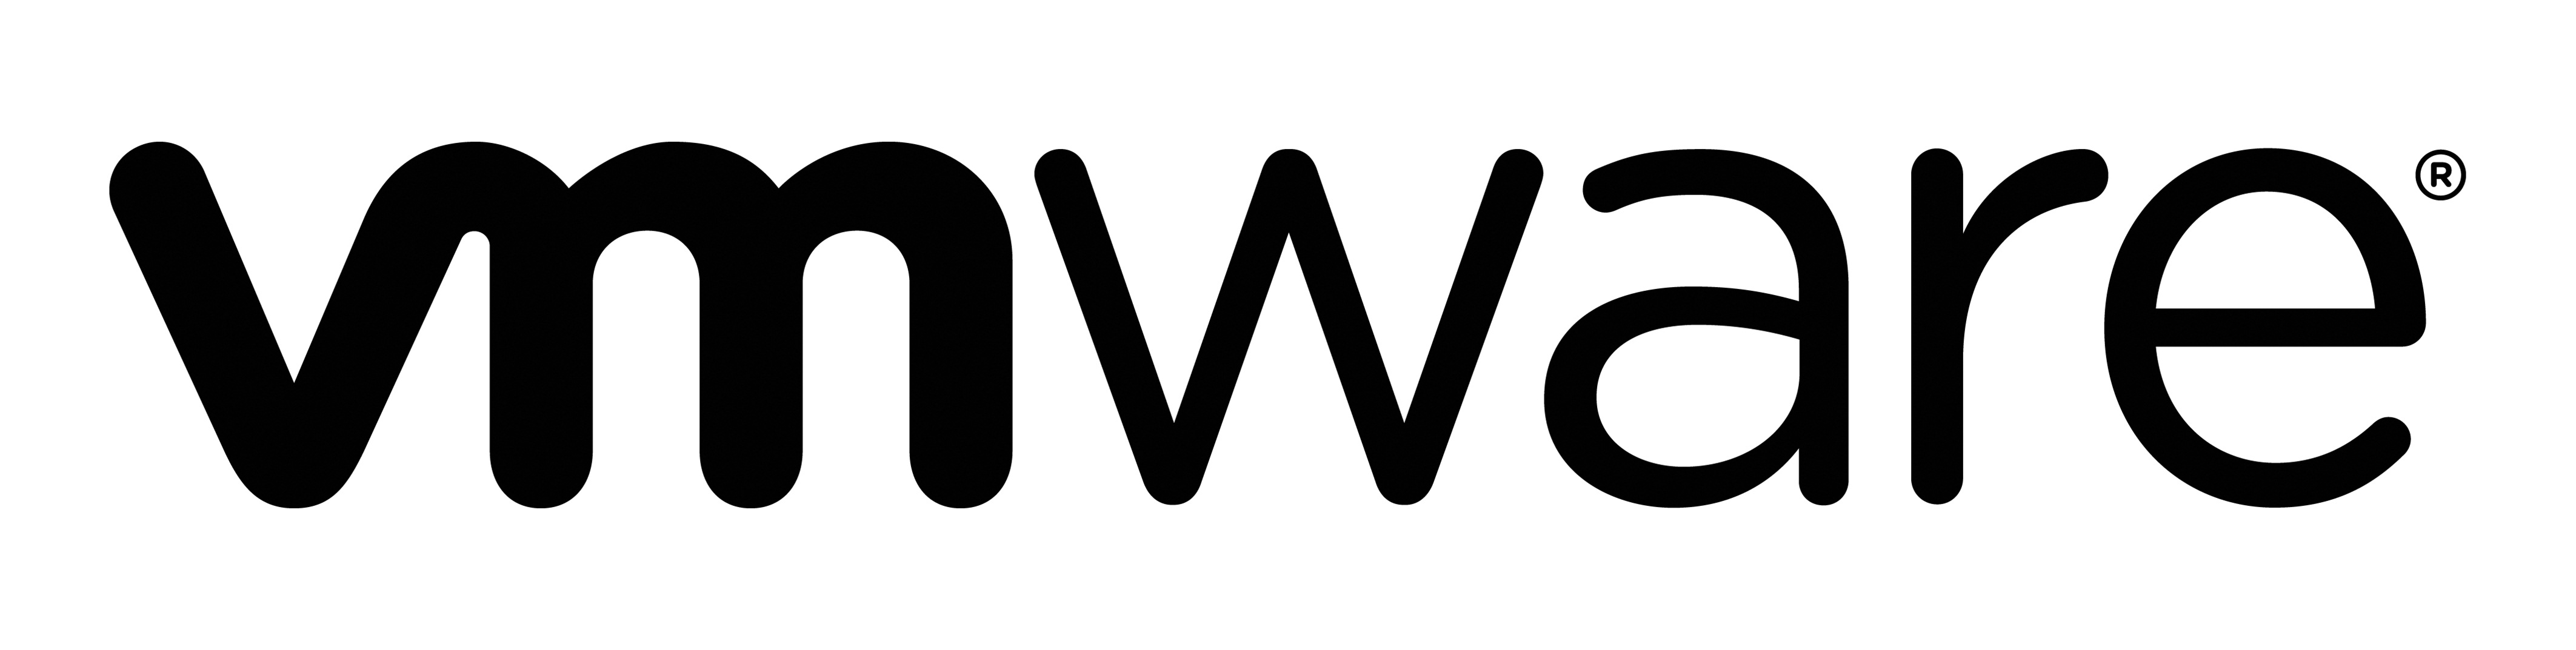 vmware logo black